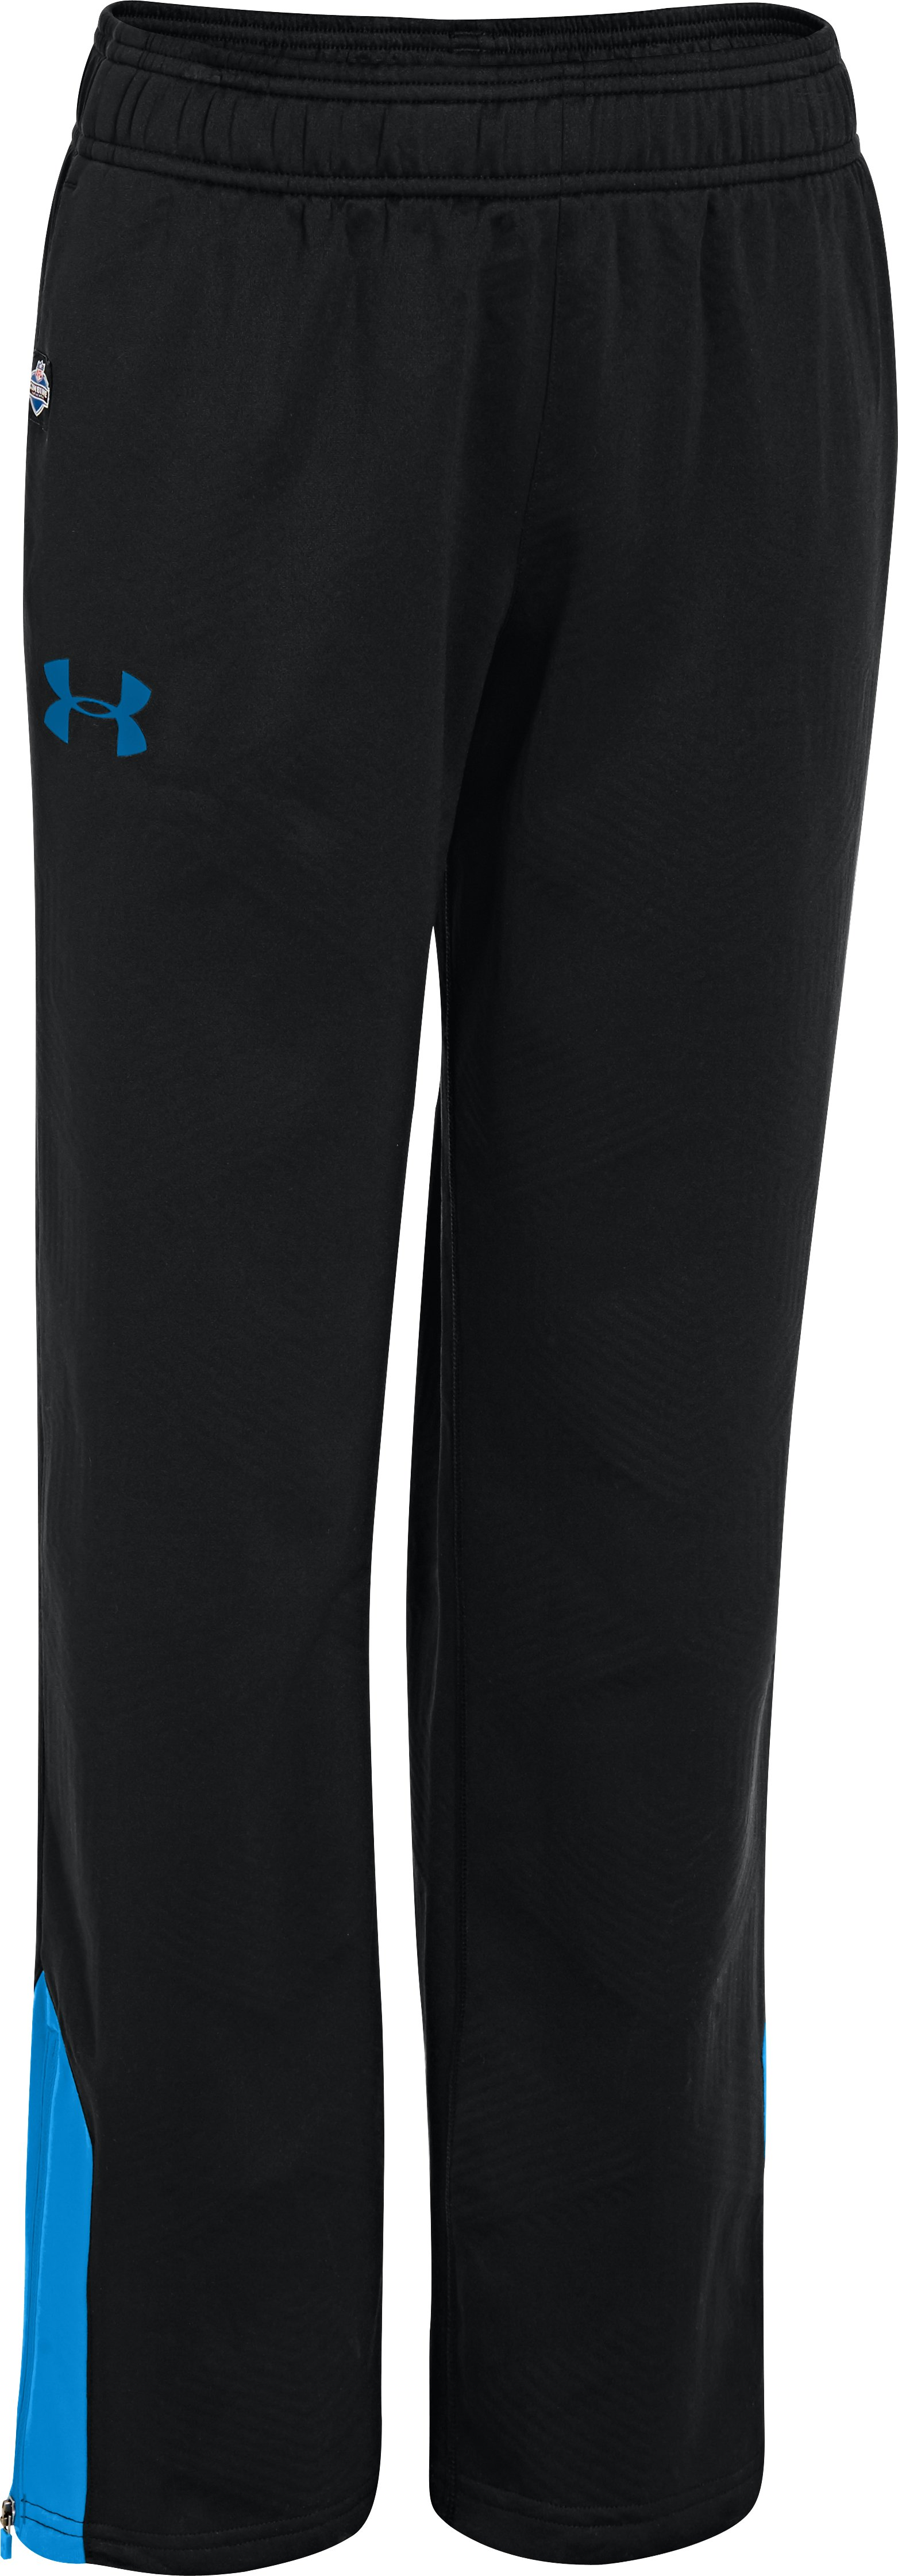 Boys' NFL Combine Authentic ColdGear® Infrared Warm-Up Pants, Black , zoomed image